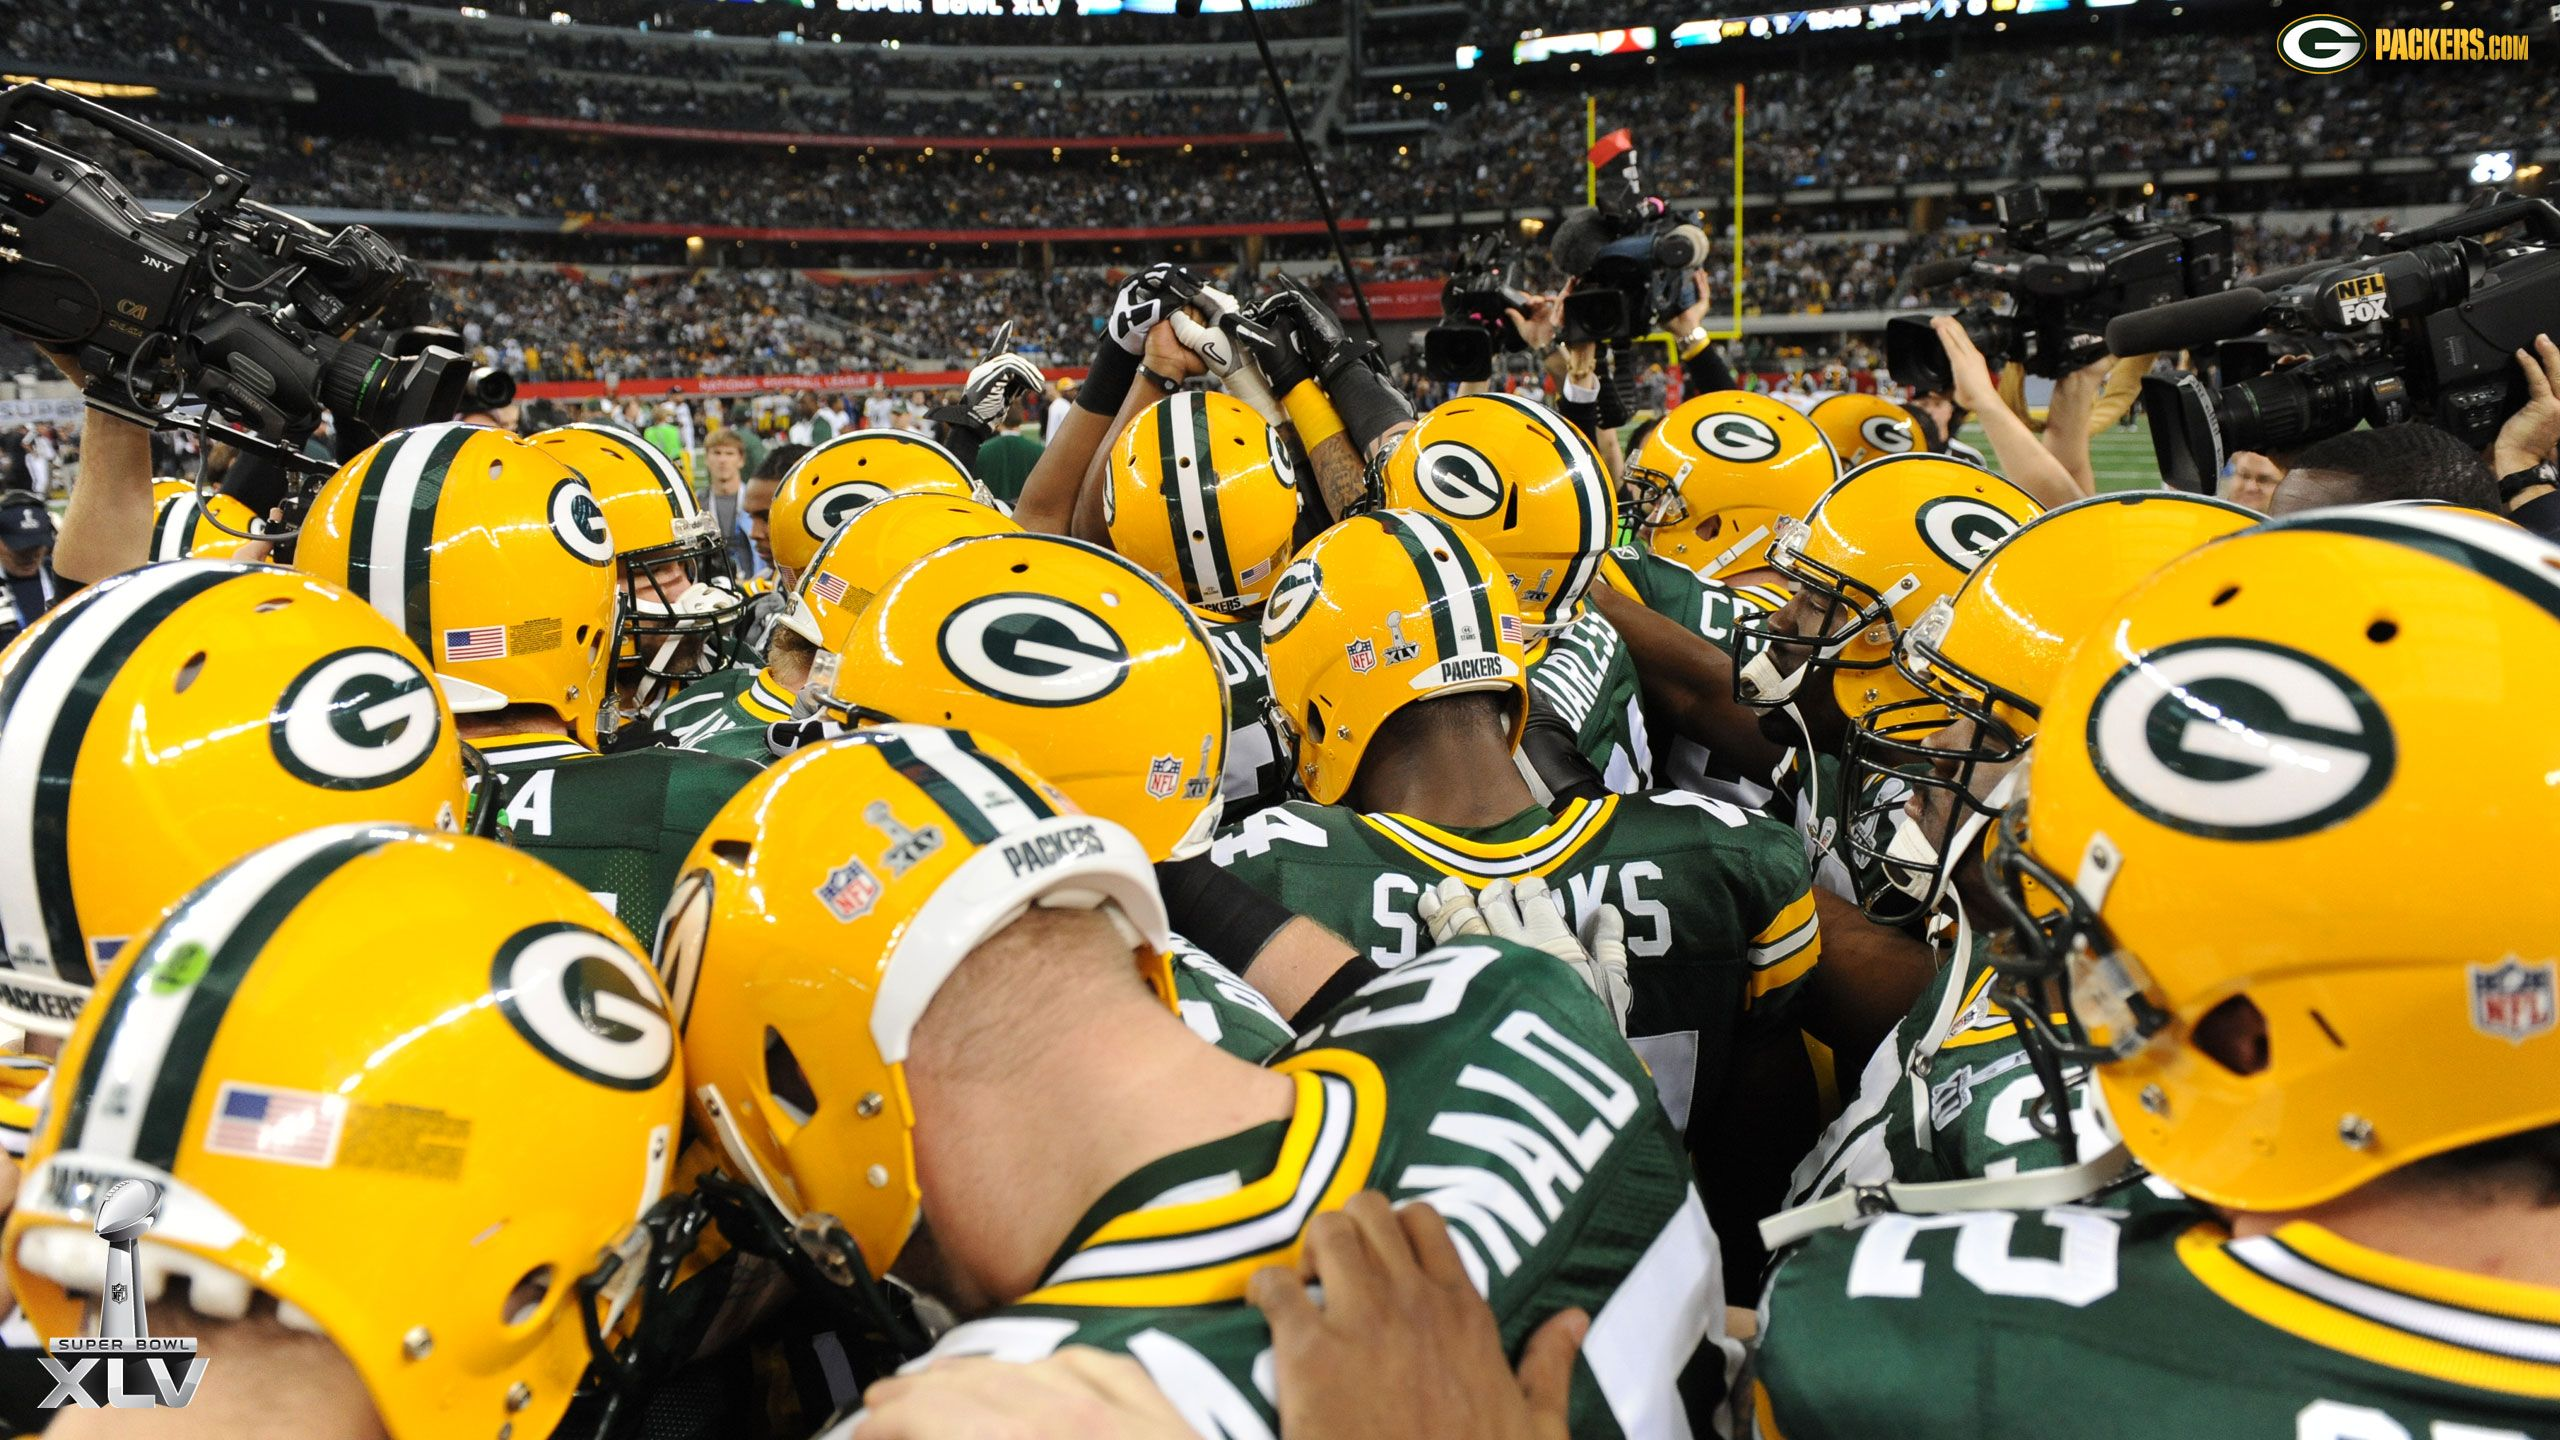 45 Nfl Football Field Wallpaper On Wallpapersafari: Packers Wallpaper Collection For Free Download